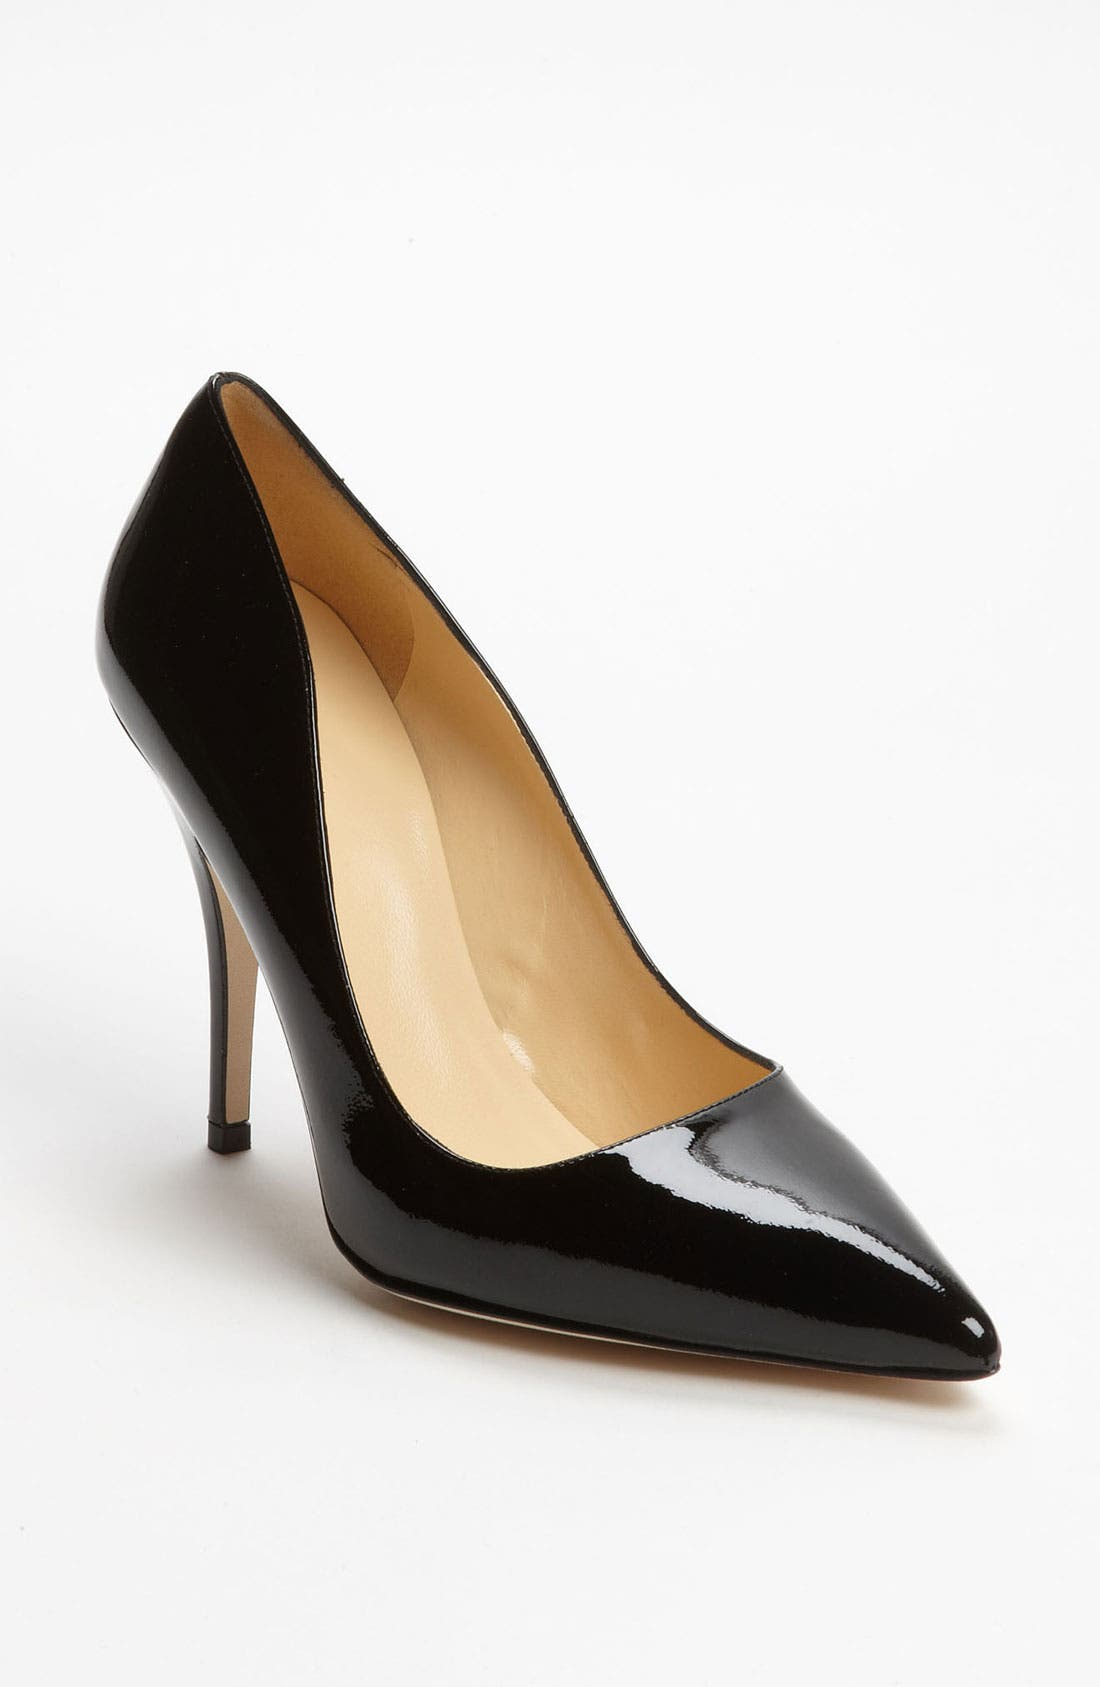 'licorice too' pump,                             Main thumbnail 1, color,                             Black Patent